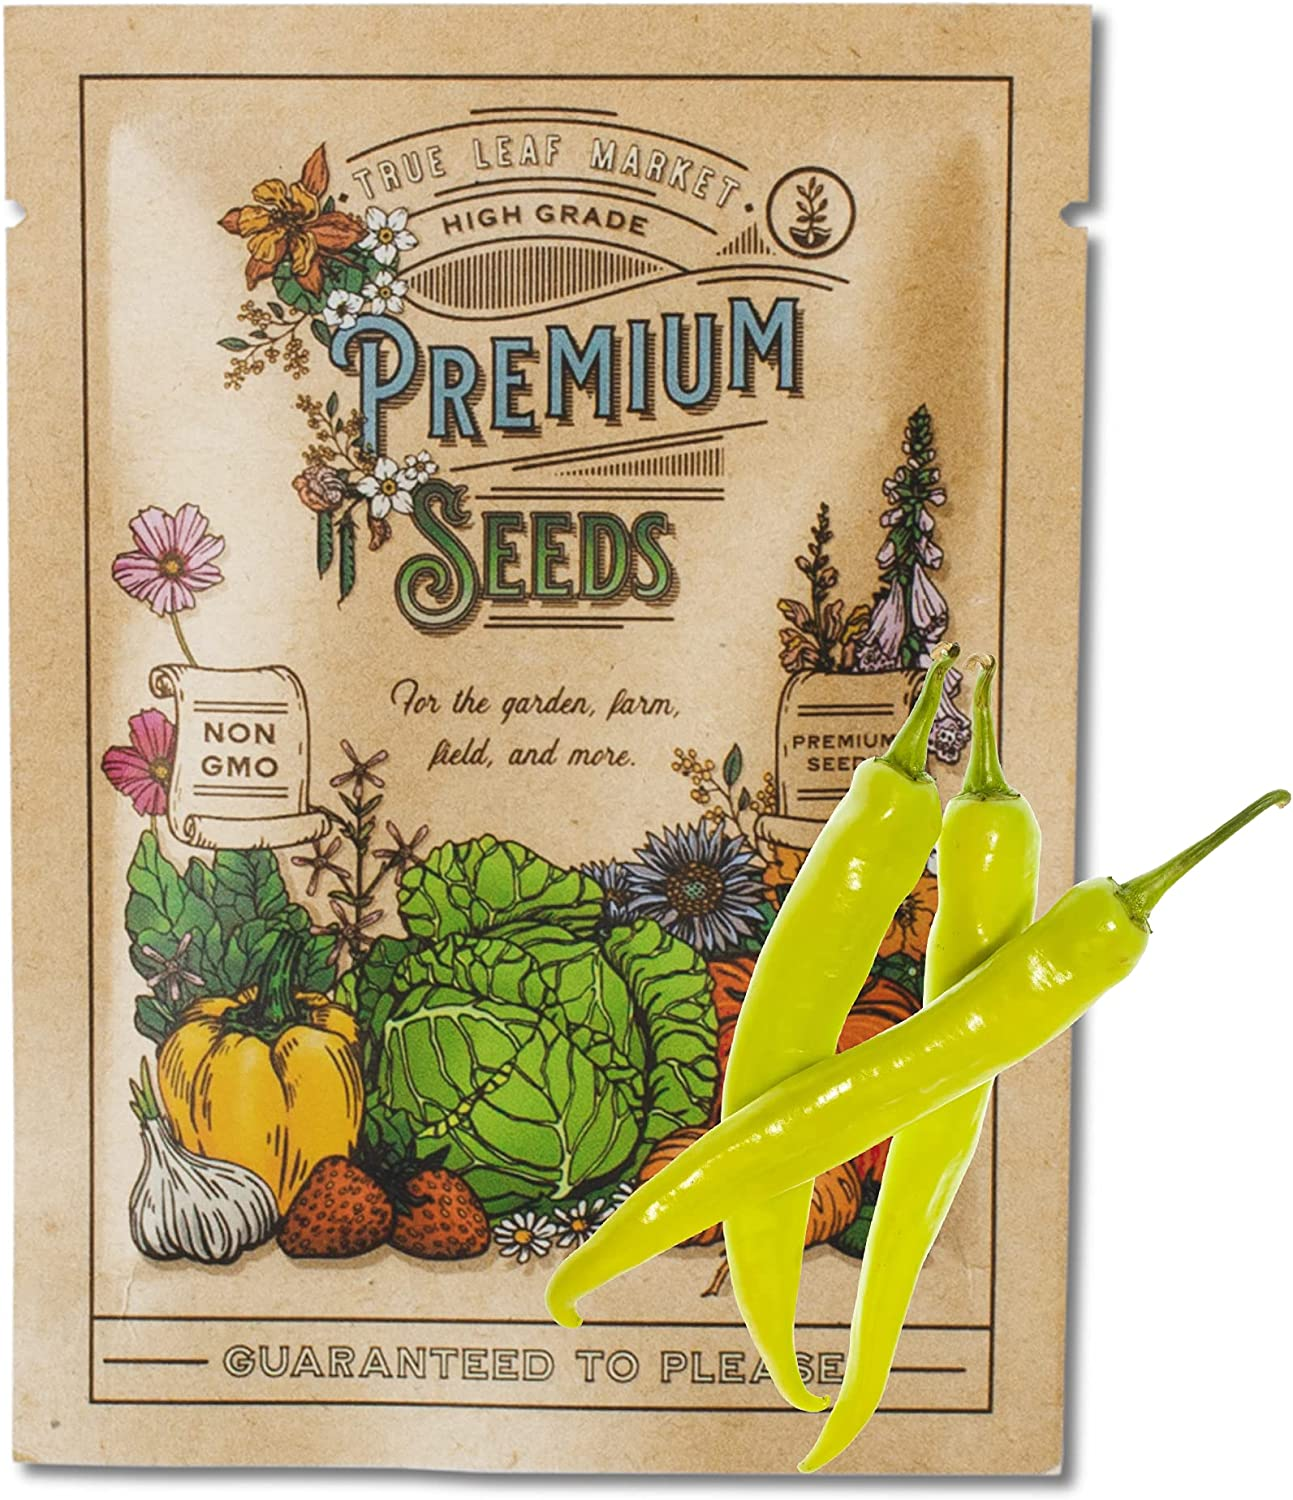 Cayenne Pepper Seeds for Planting - Cayenne Golden - 500 mg 90+ Seeds - Home Garden Hot Pepper Seeds - Non-GMO, Heirloom Cayenne Seeds - Sealed in a Beautiful Mylar Package for Extended Shelf Life